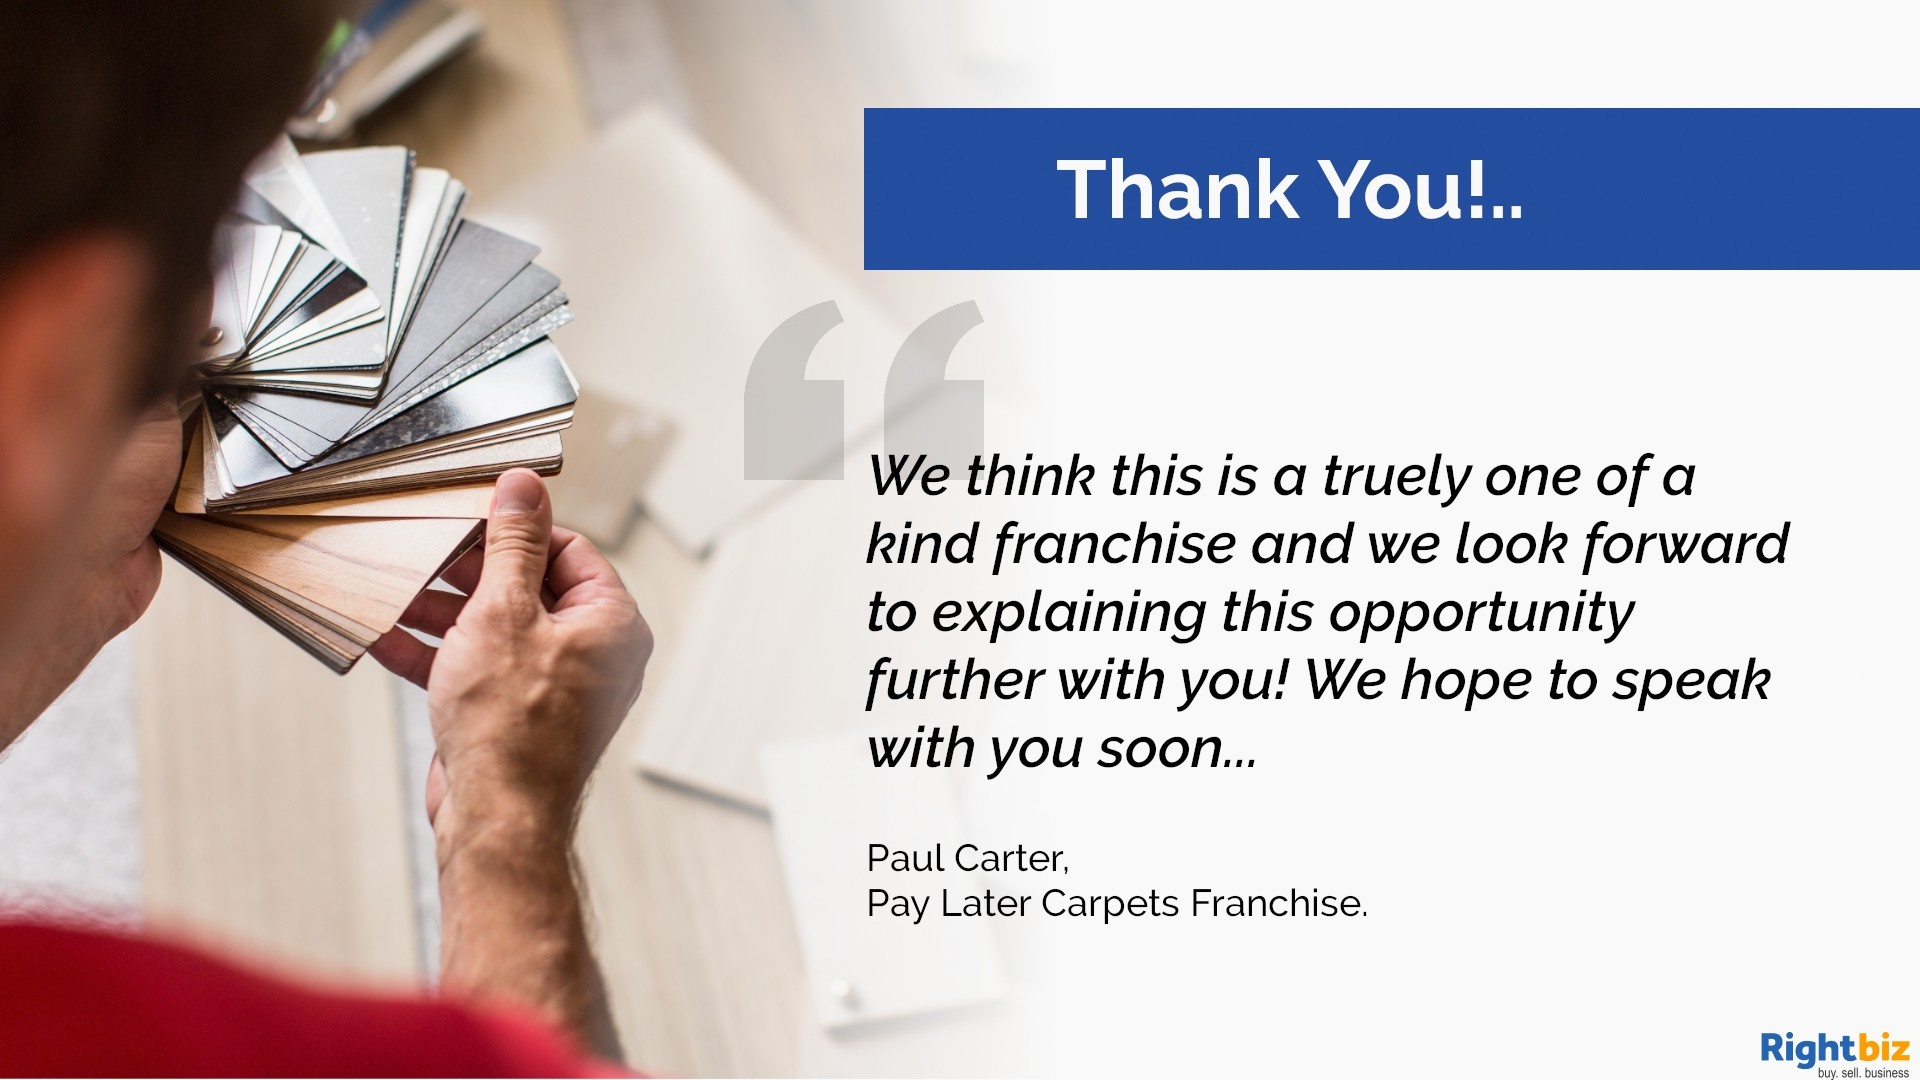 Pay Later Carpets Franchise Glasgow Our First Franchisee Made £11,000+ Profit in Month One - Image 7